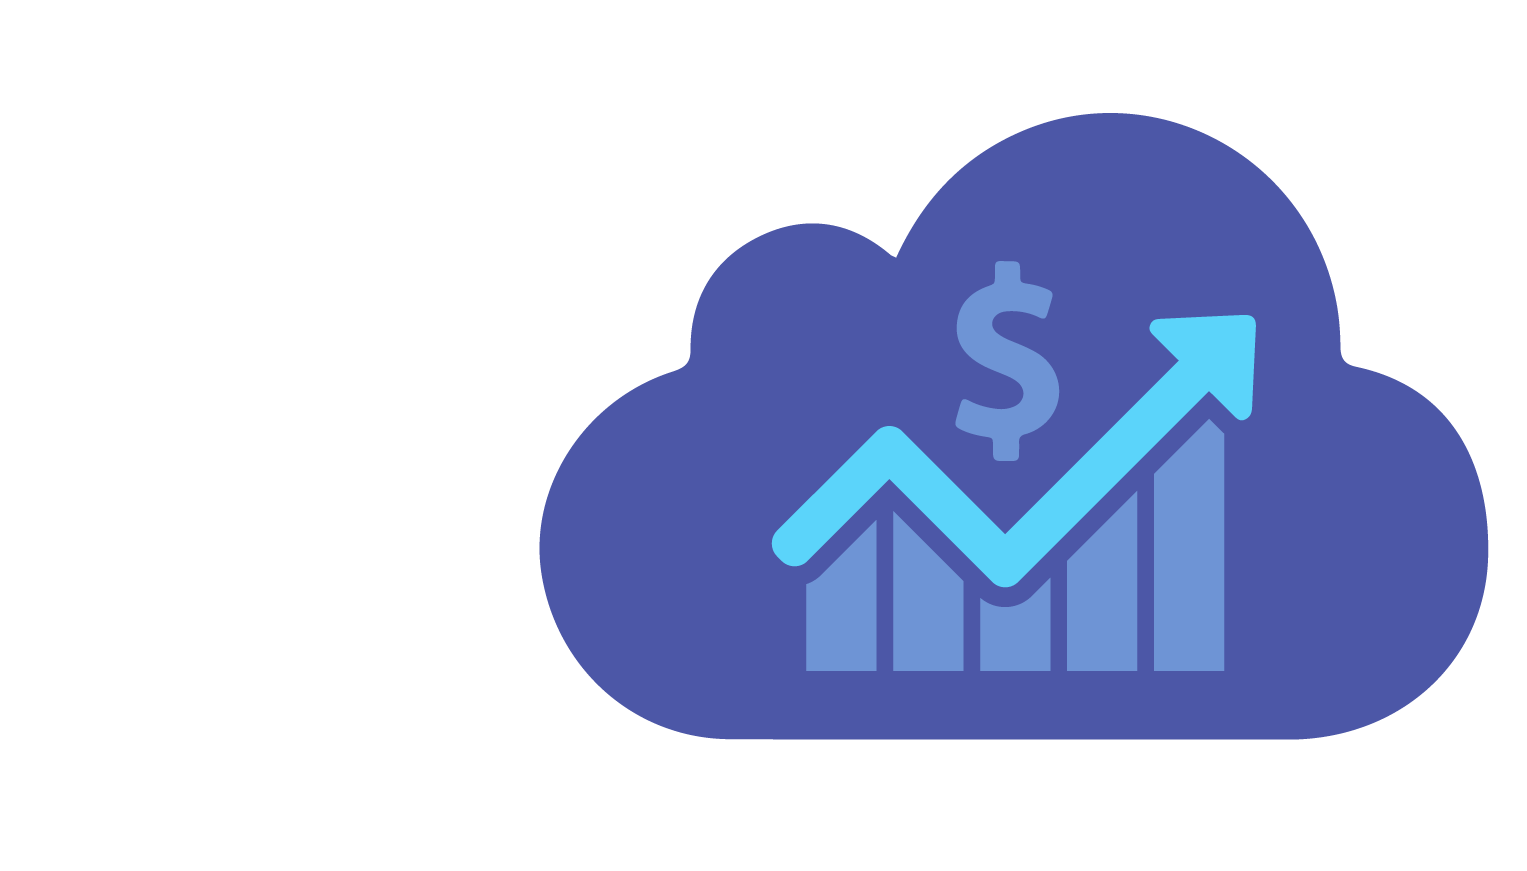 money_cloud_icon-18.png